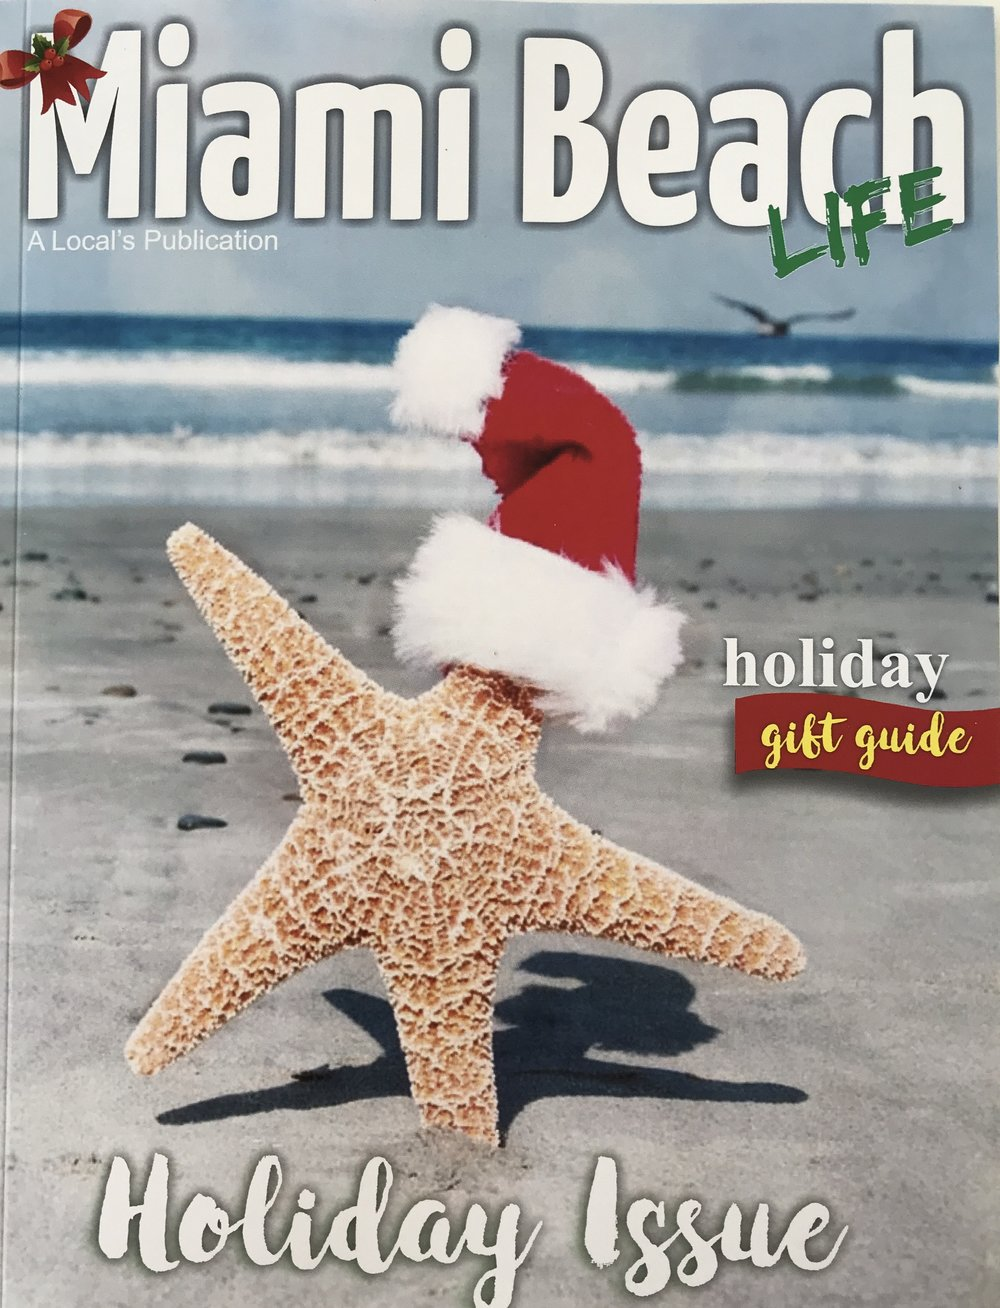 Miami Beach Life Magazine December 2017